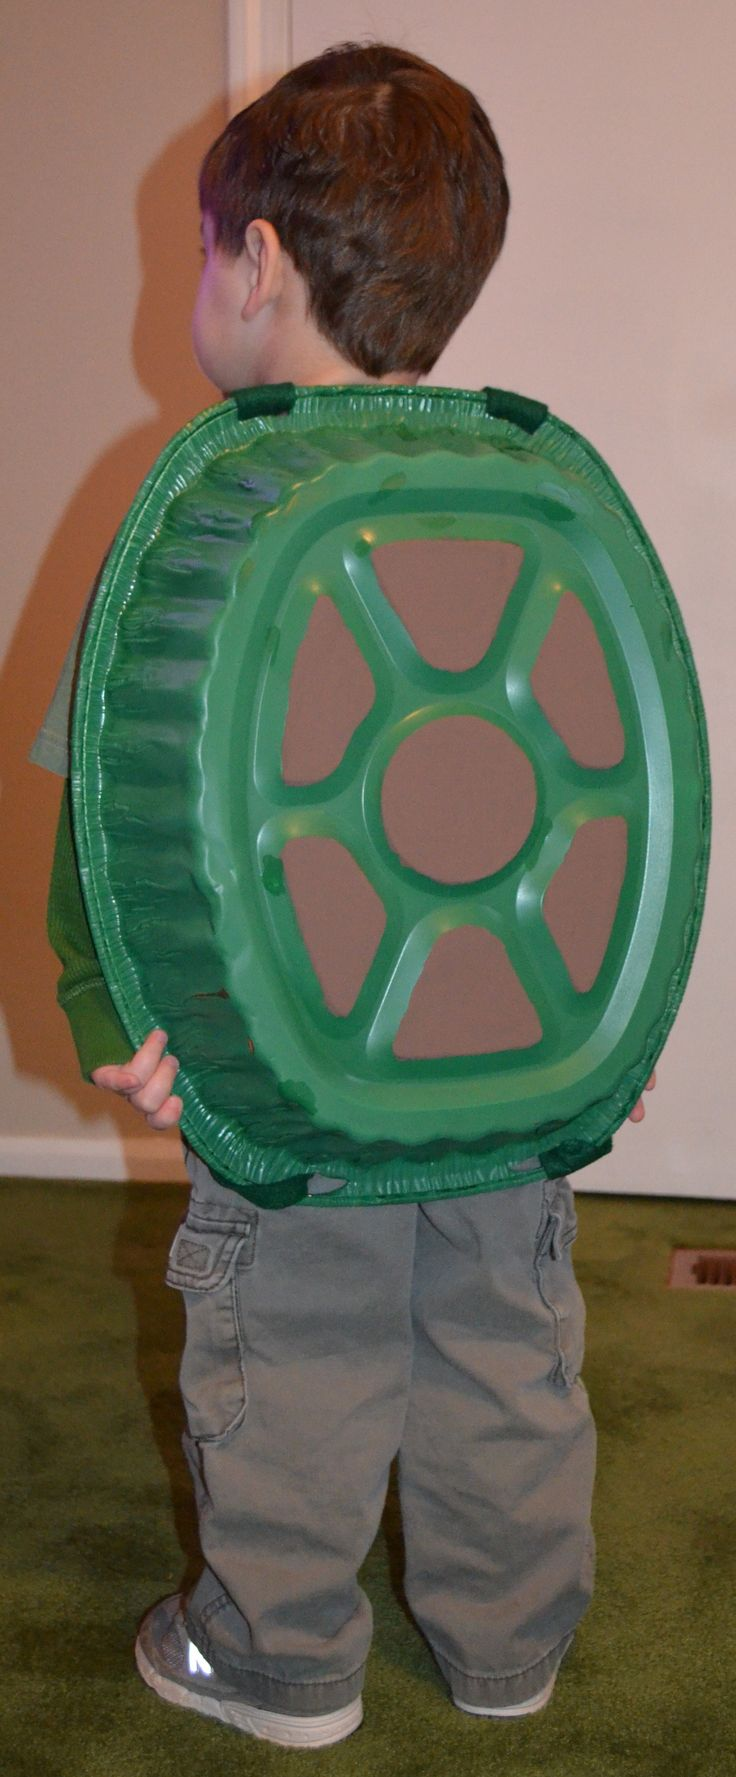 "DYI turtle shell costume for children. Just need a disposable roasting pan, spray paint, felt,and Velcro. ( I cut a sheet of felt into two thin strips and used Velcro to make the straps which criss crossed in the front and made a ""X"" shape on his chest)"